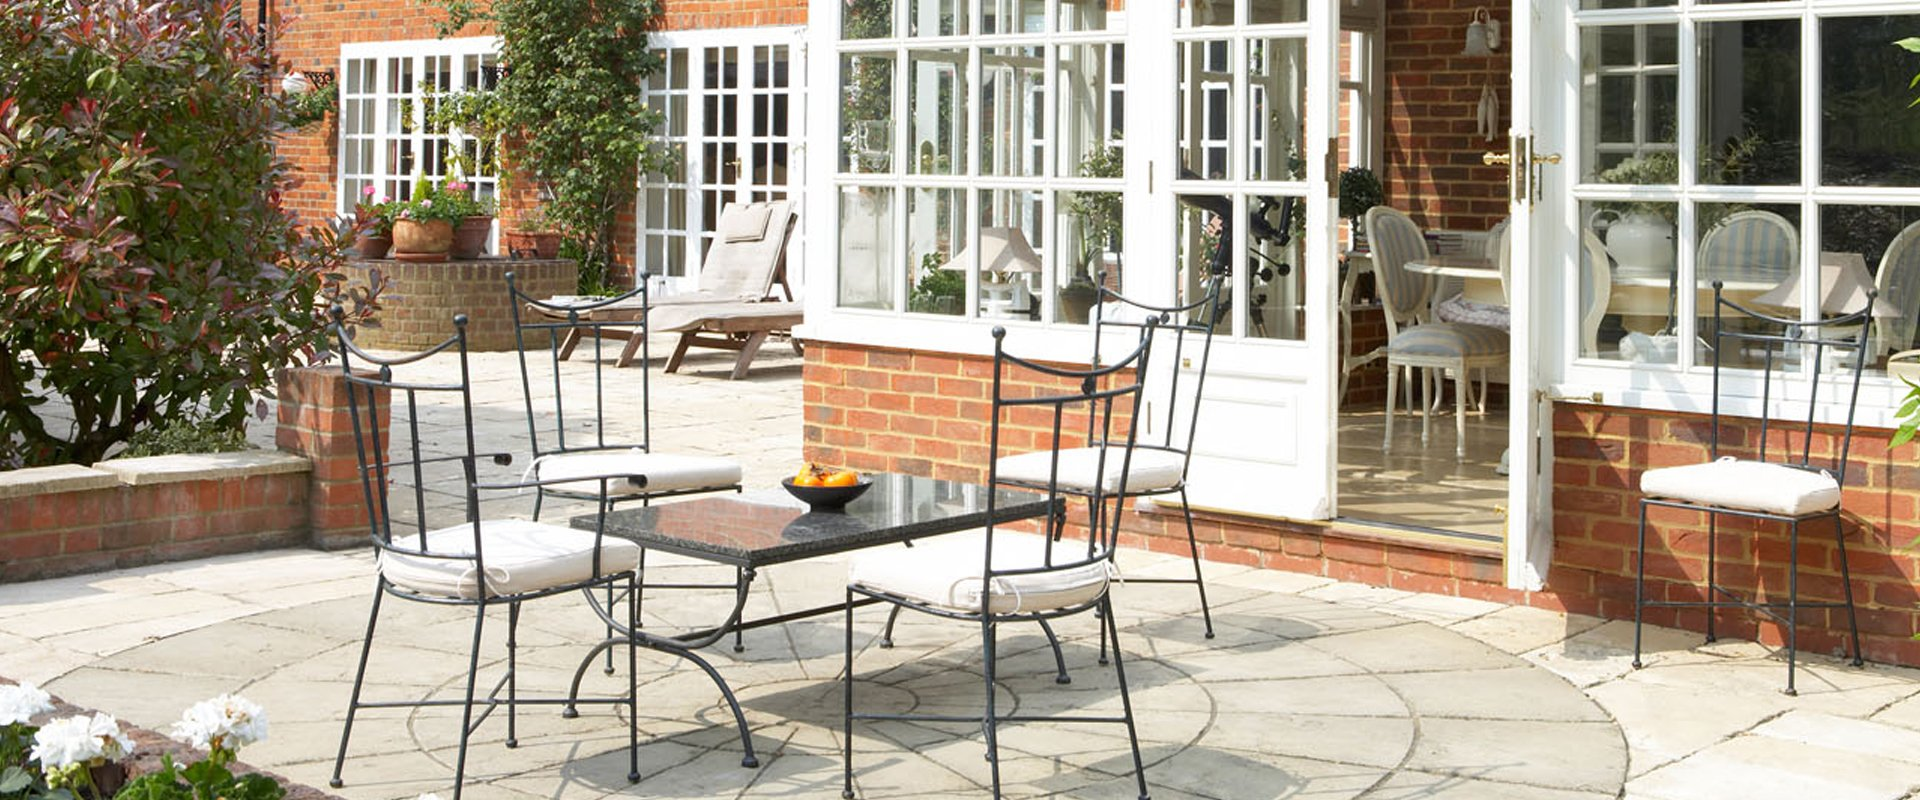 Outdoor dining furniture and loungers on a large patio outside a white conservatory